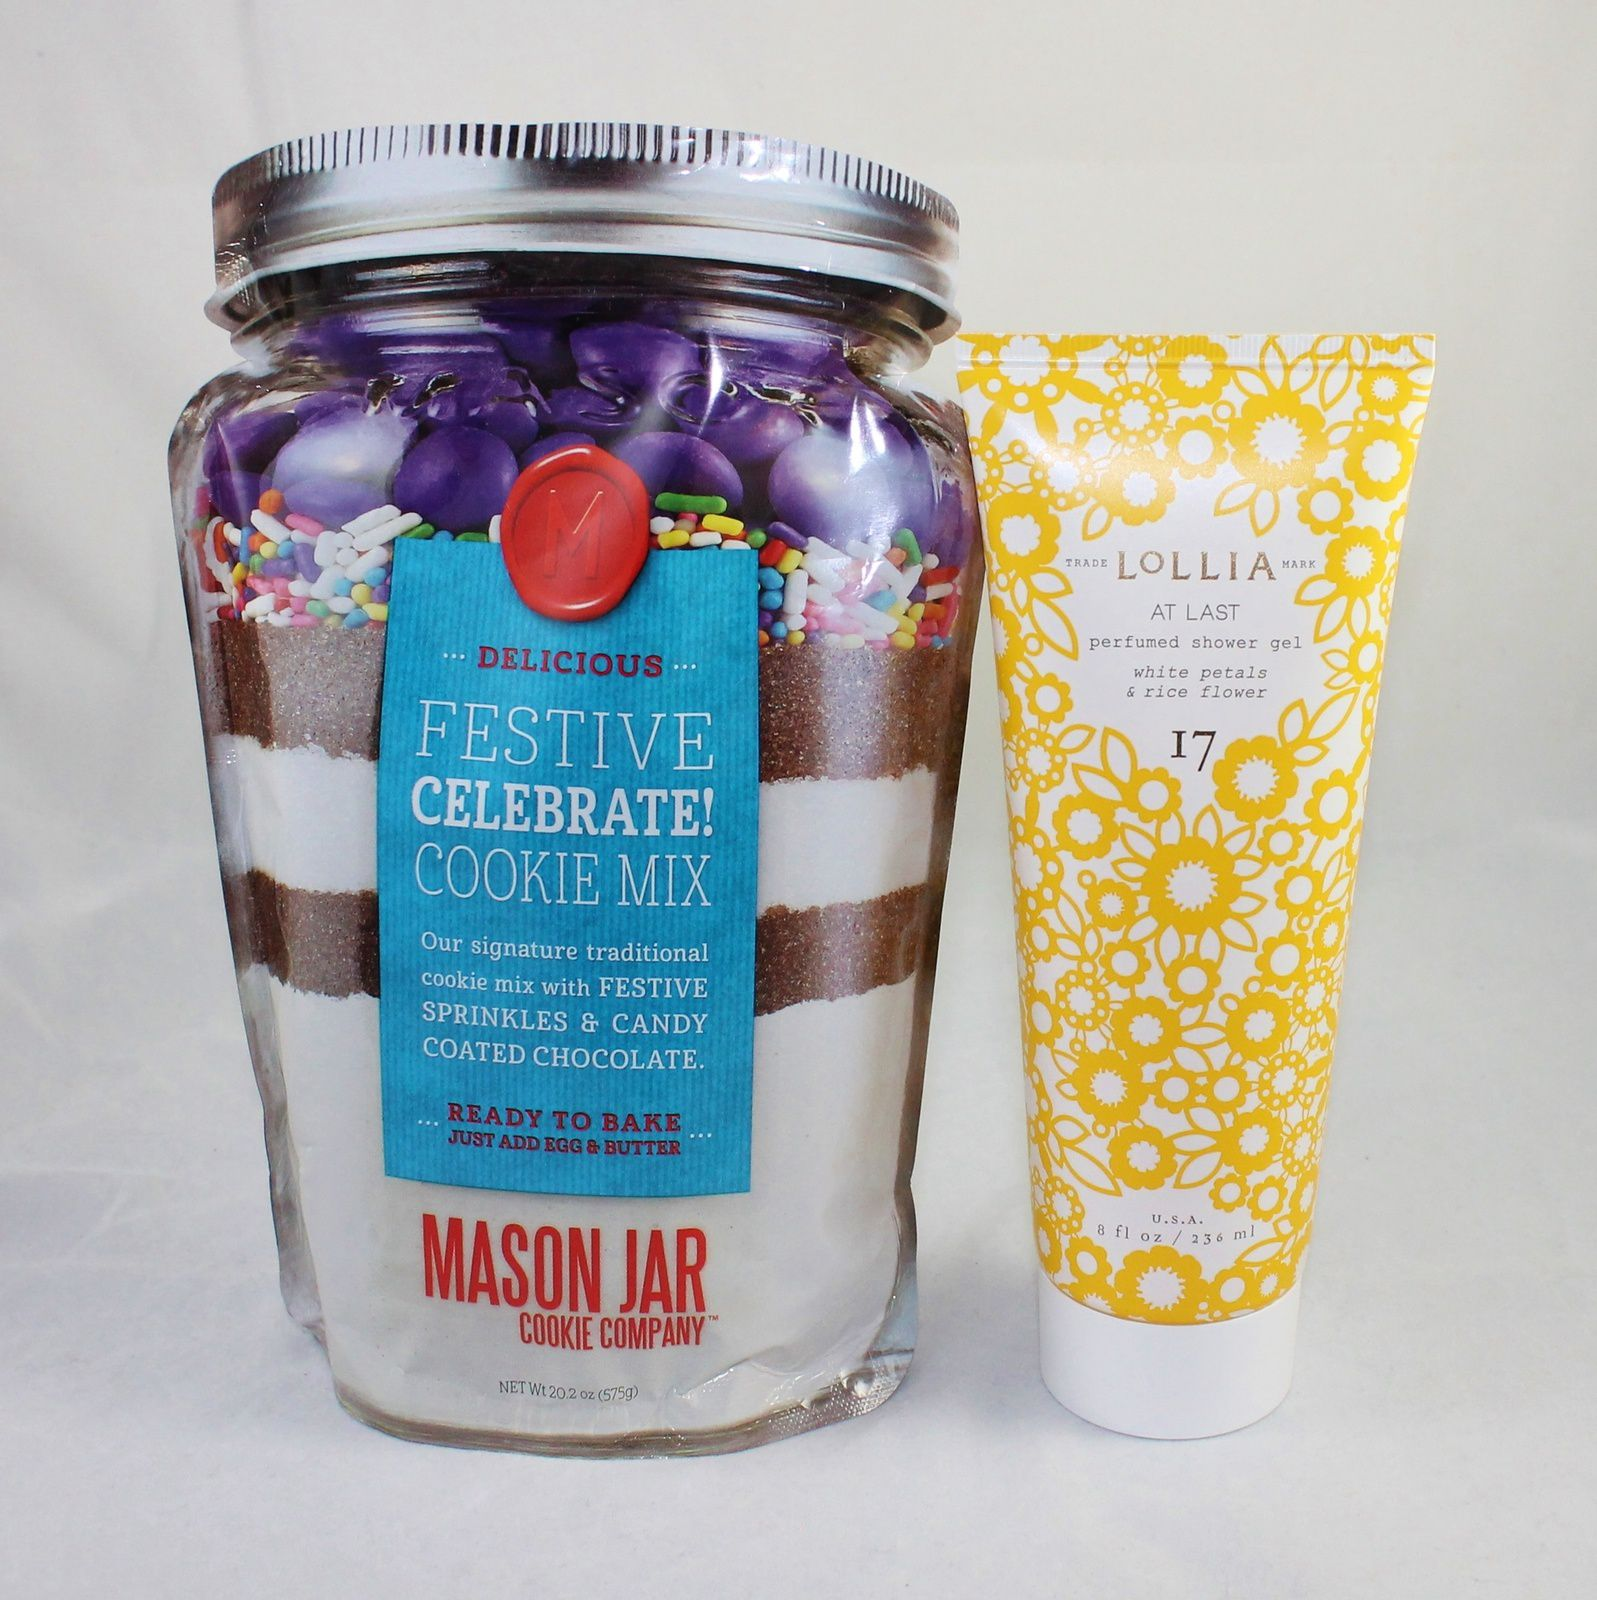 The Mason Jar Company Cookie Mix in a Soft Jar Pouch & Lollia At Last Perfumed Shower Gel